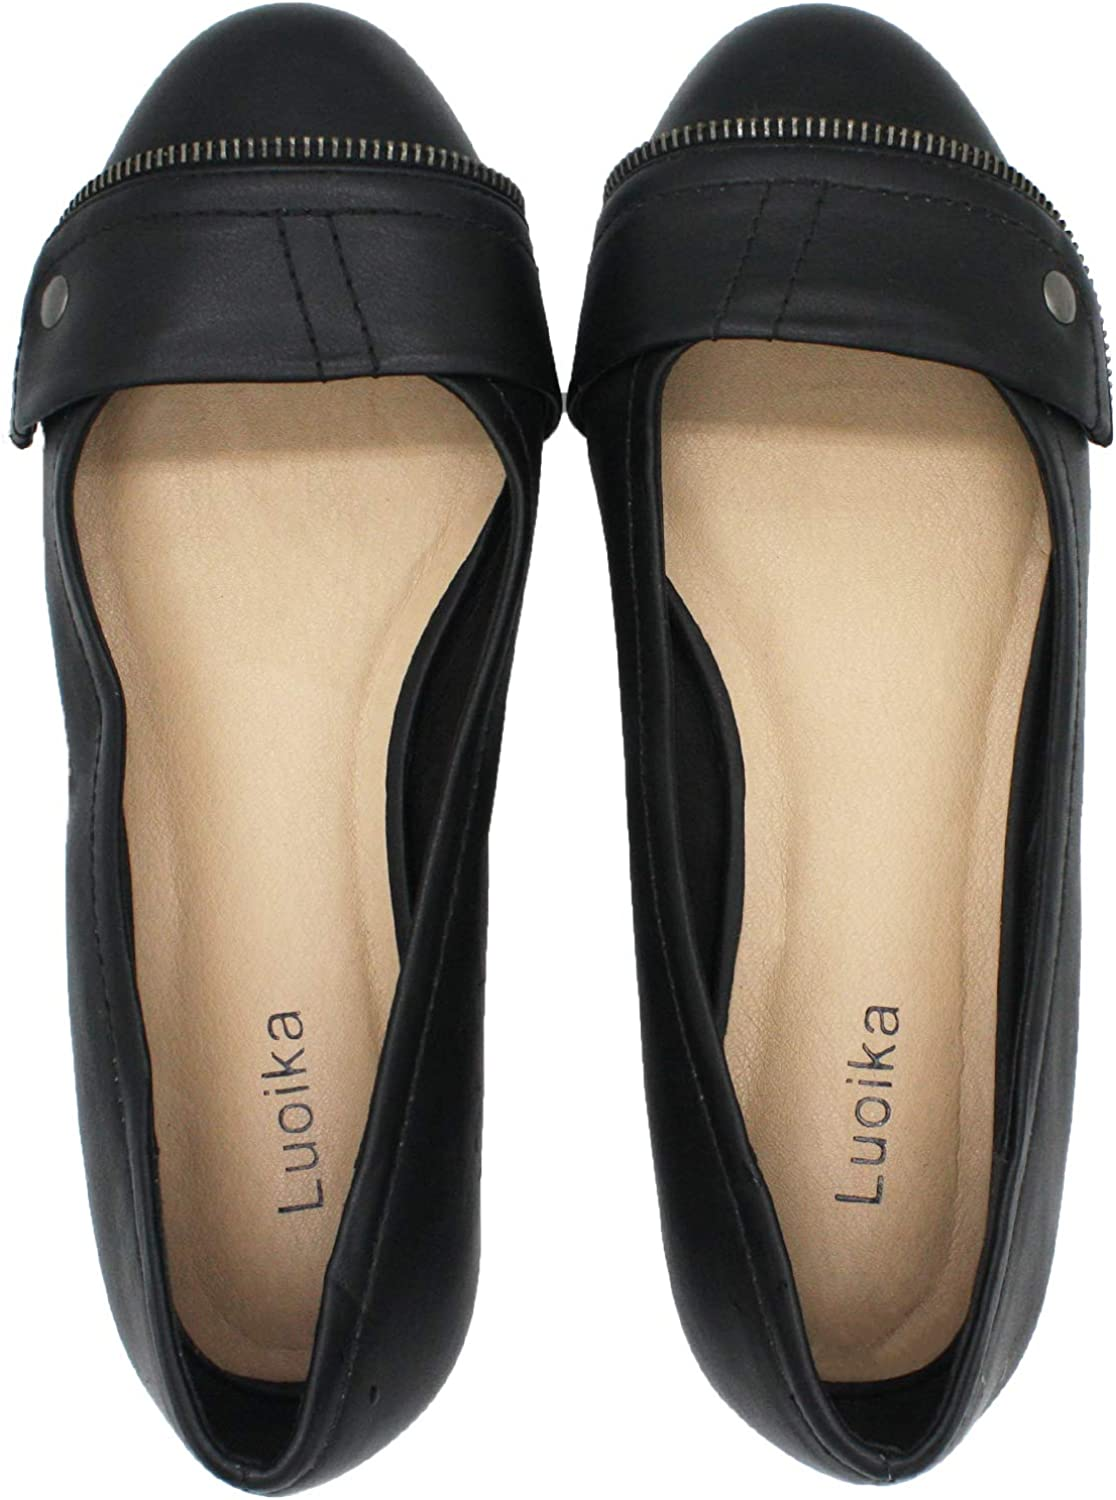 Luoika Women's Wide Width Flat shoes - Comfortable Slip On Round Toe Faux Leather Ballet Flats.